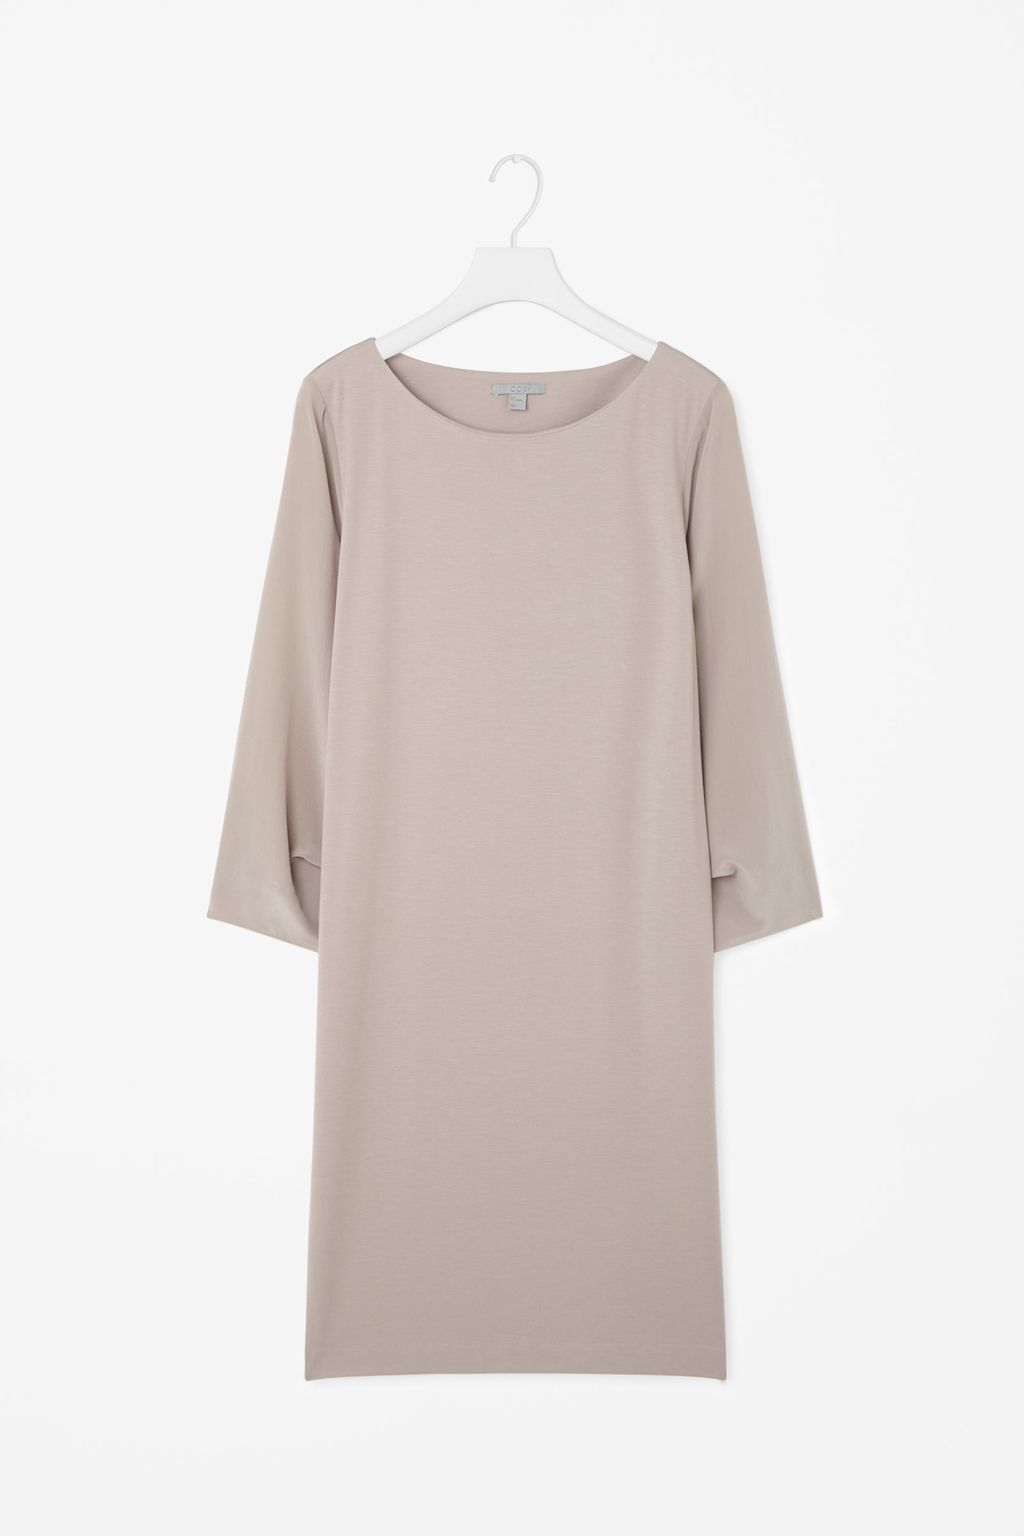 Silk Sleeve Short Dress - style: shift; pattern: plain; predominant colour: taupe; occasions: casual; length: just above the knee; fit: body skimming; fibres: viscose/rayon - stretch; neckline: crew; sleeve length: 3/4 length; sleeve style: standard; texture group: silky - light; pattern type: fabric; season: s/s 2016